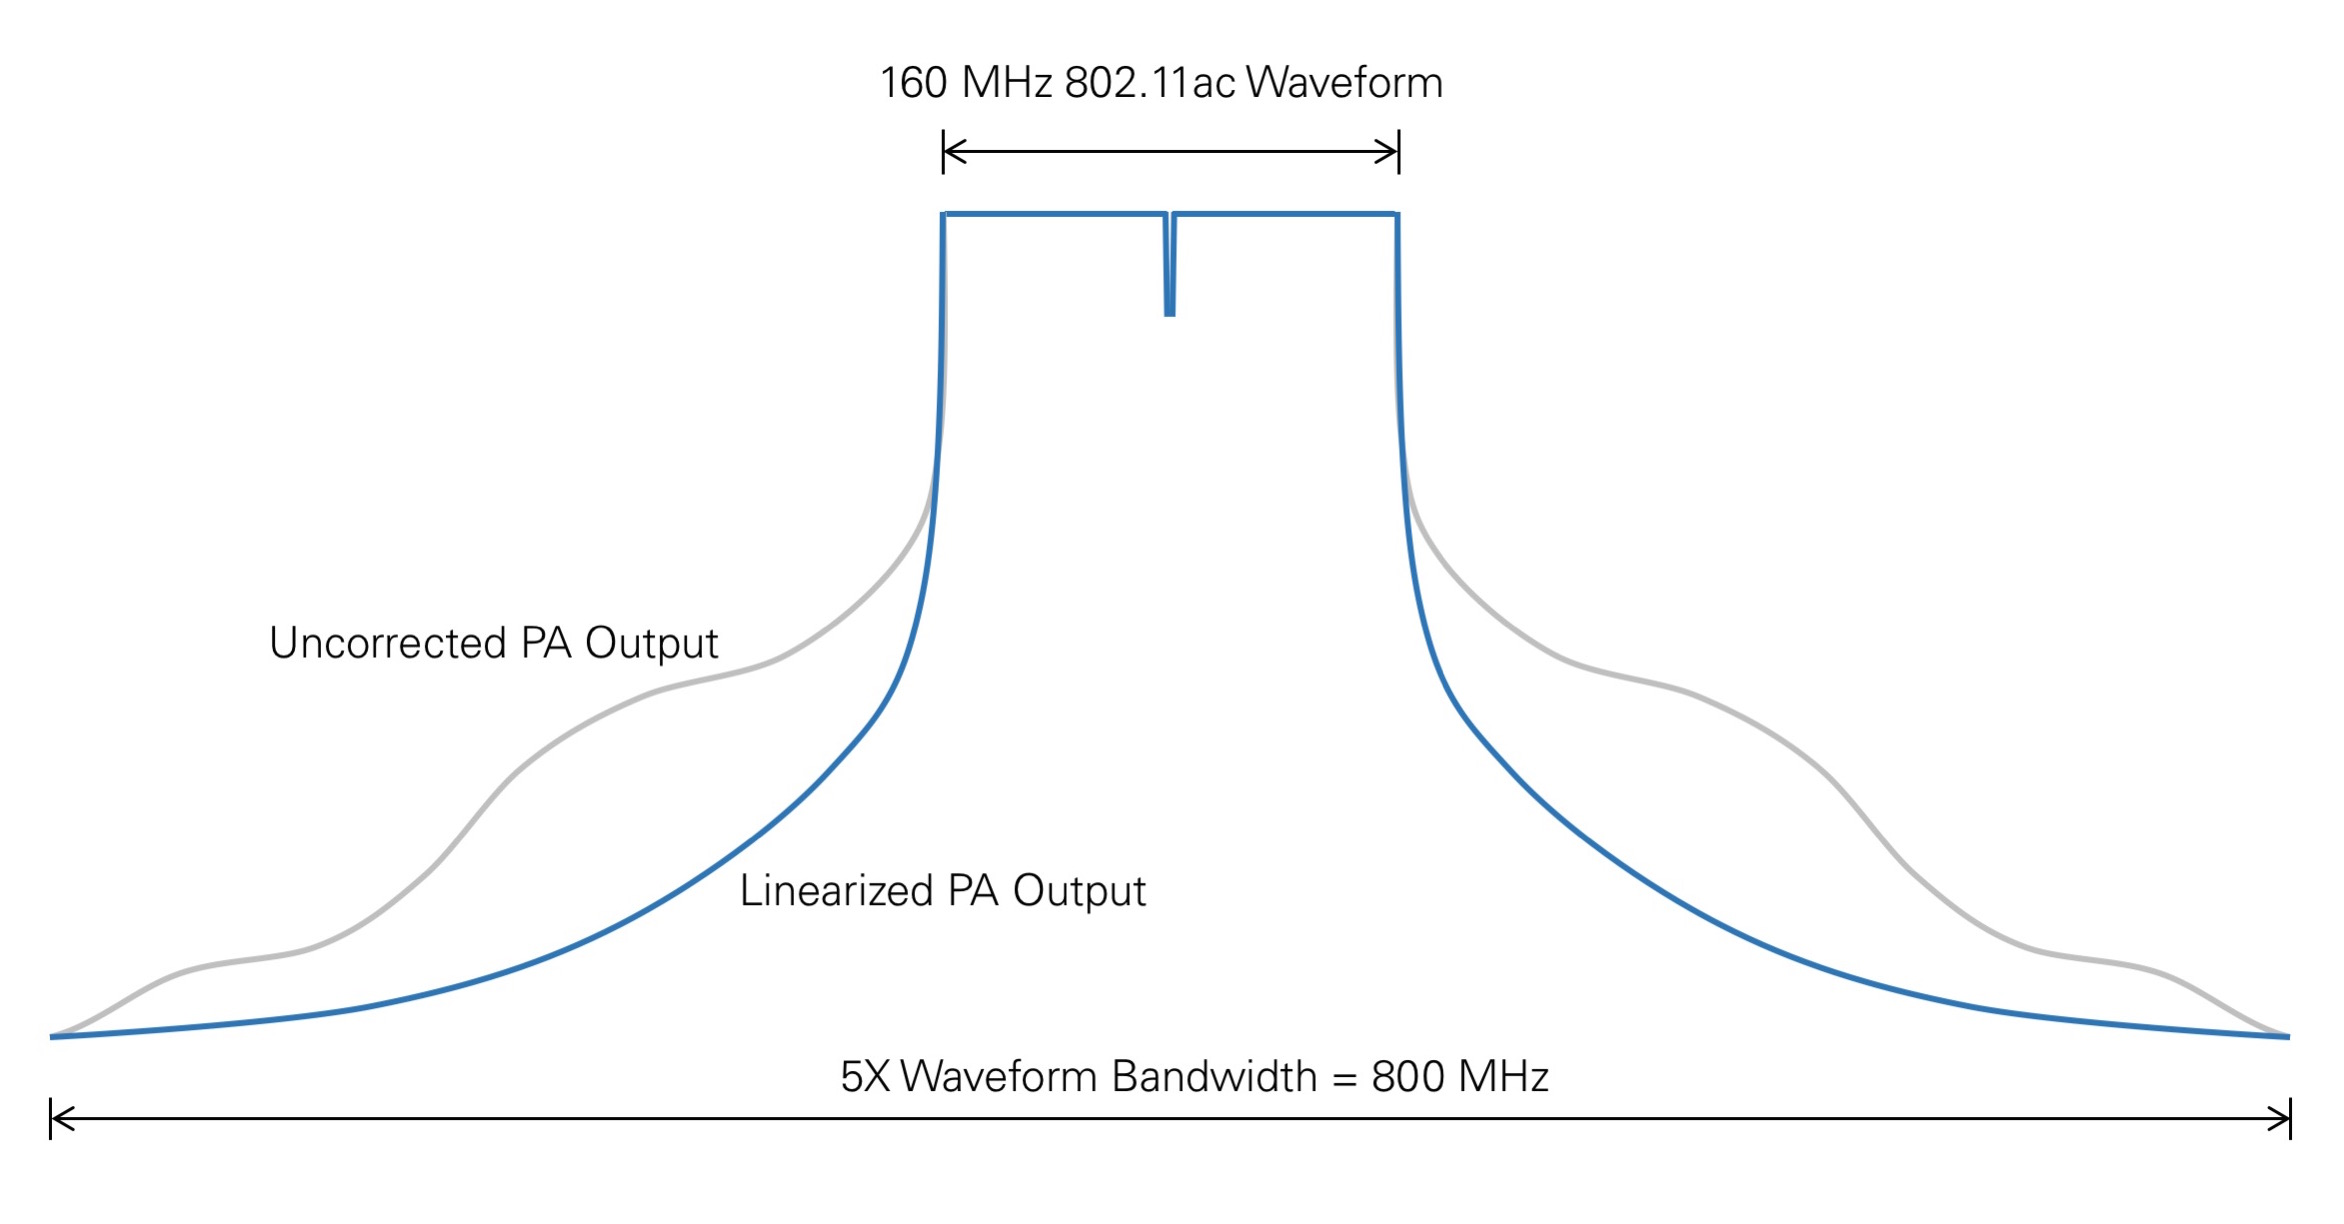 Figure 2 - Test equipment corrects for non-linear distortion